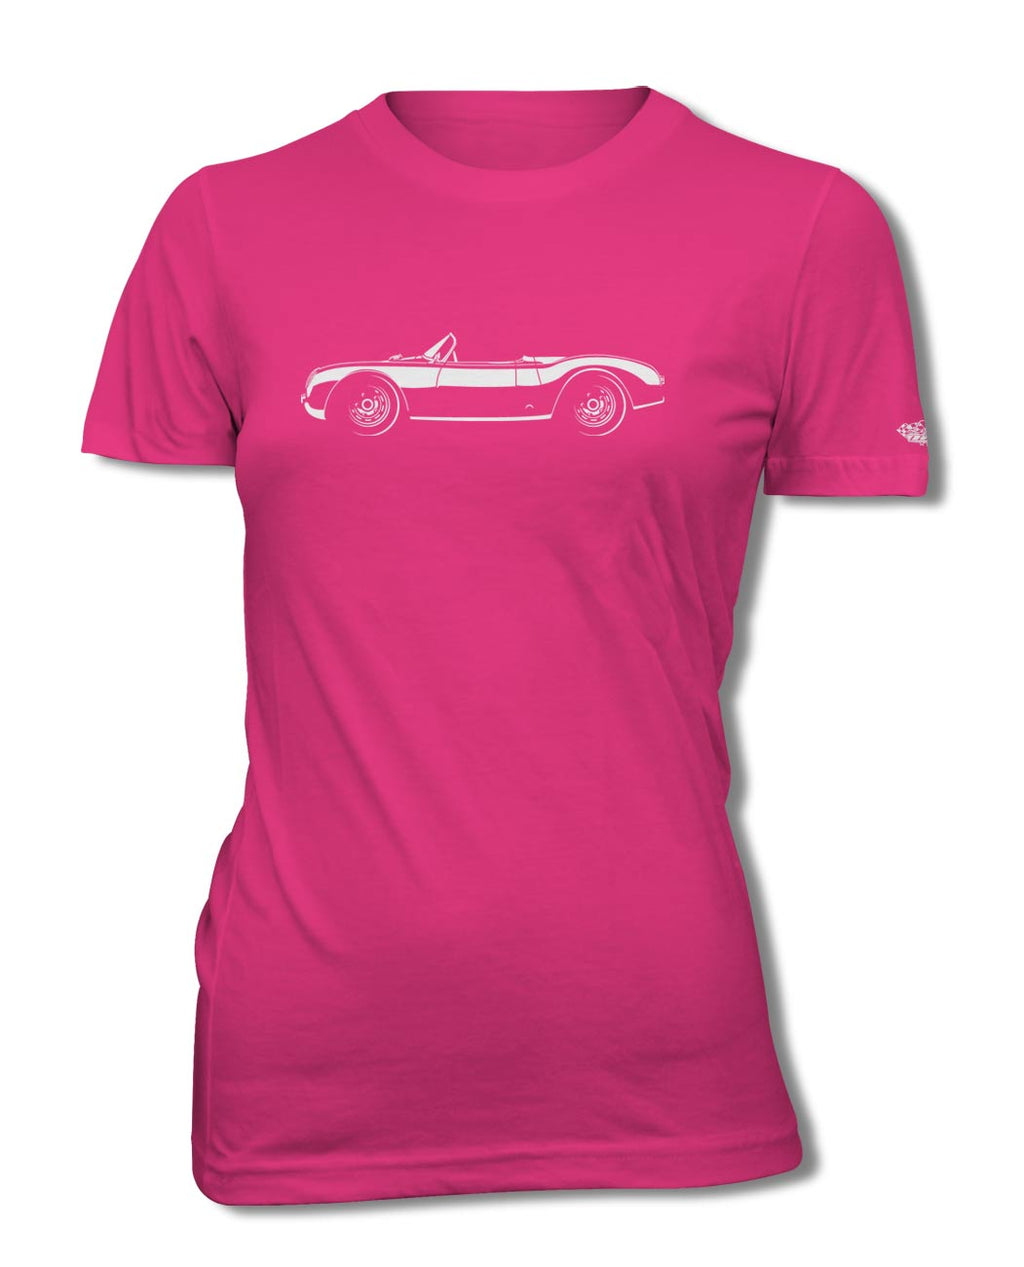 Porsche 550 Spyder T-Shirt - Women - Side View